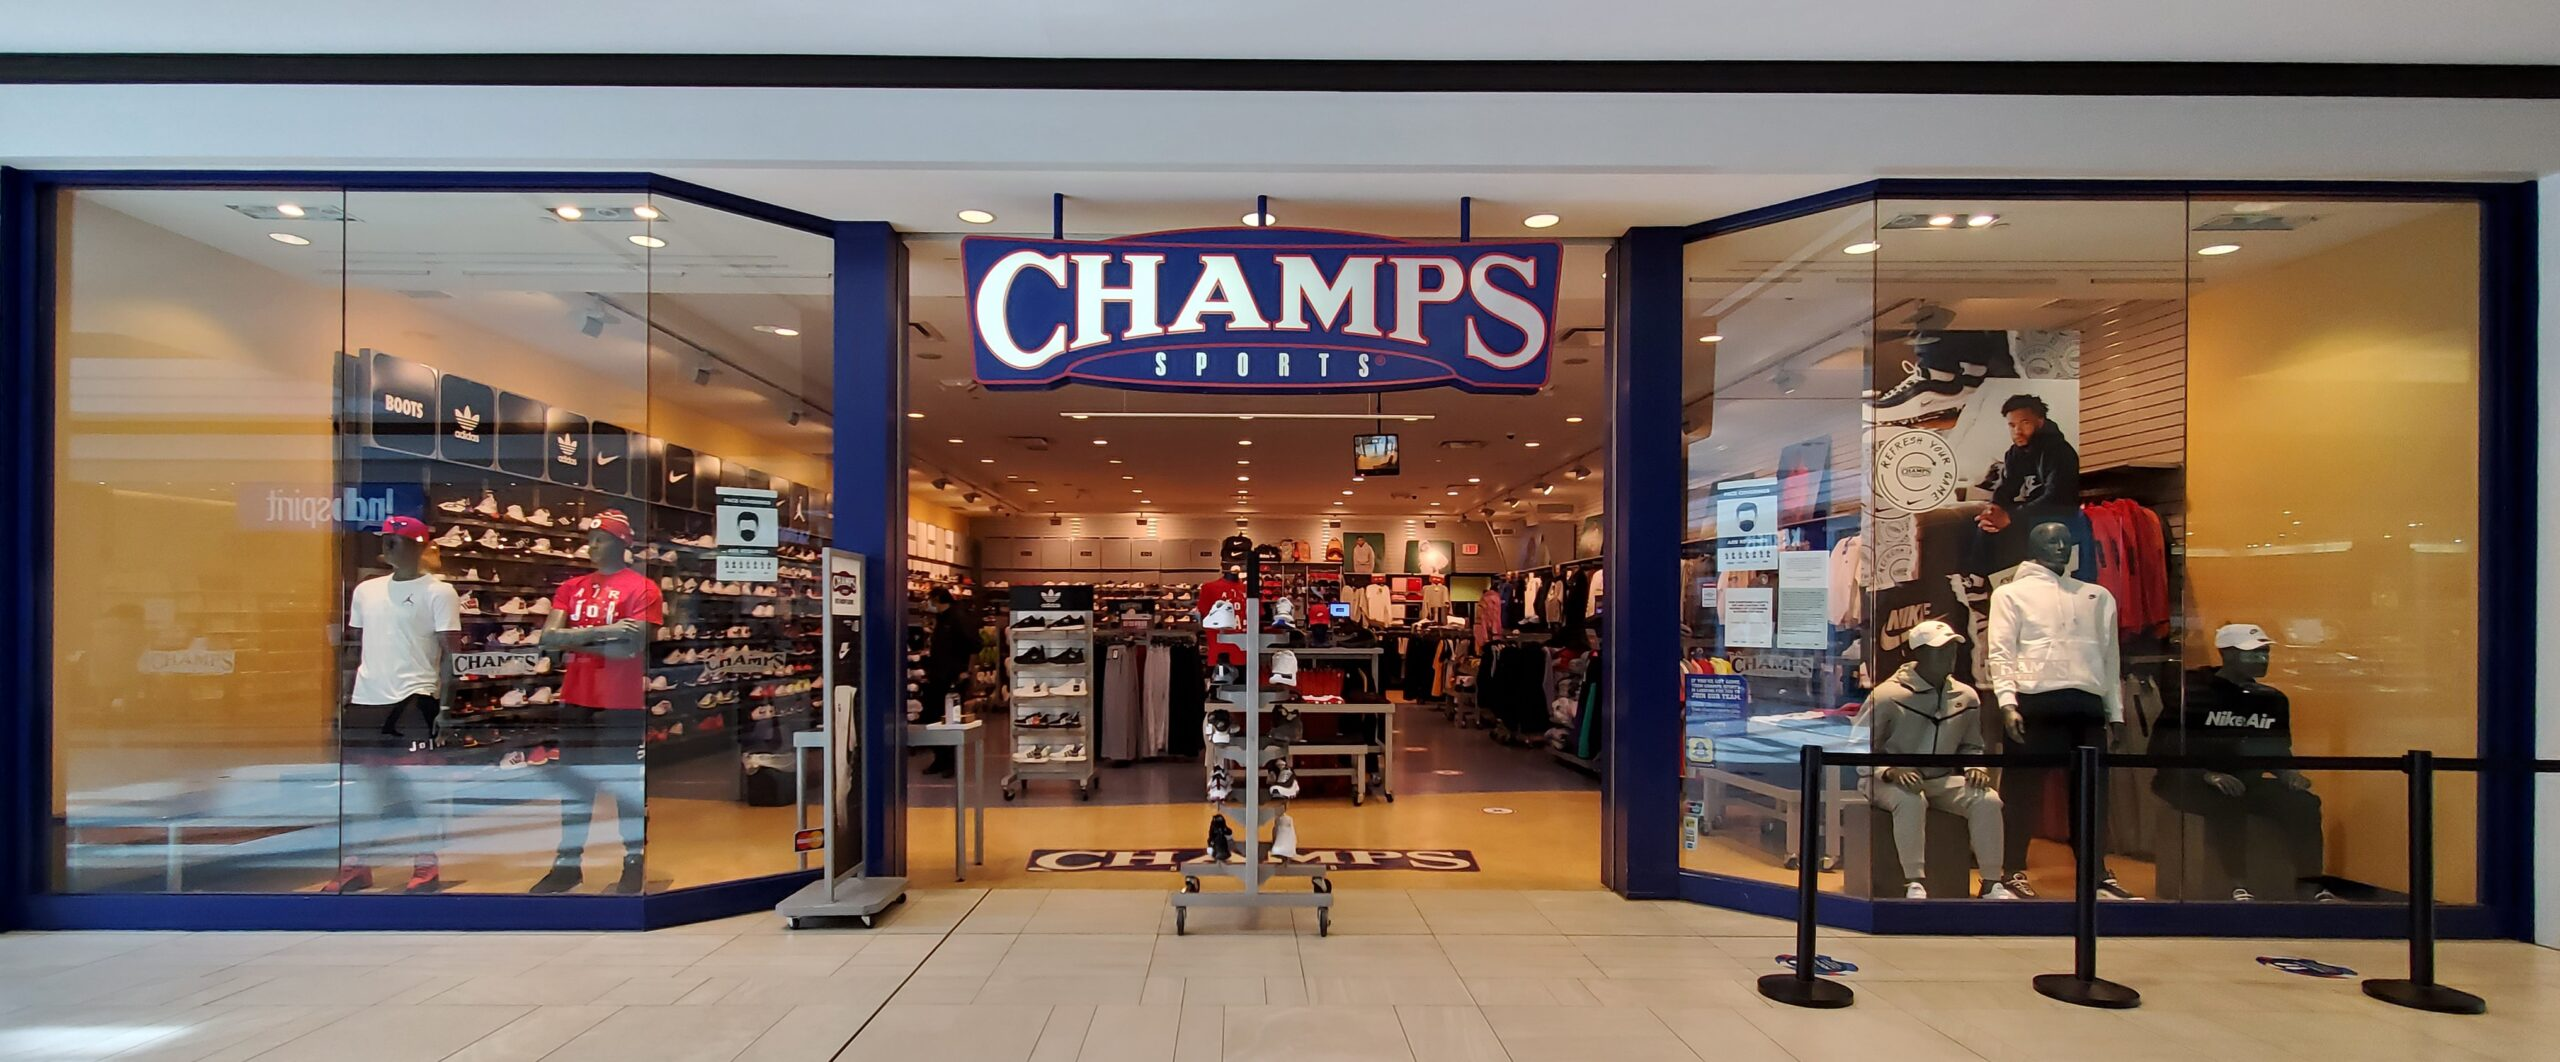 Champs Sports at CF Richmond Centre.